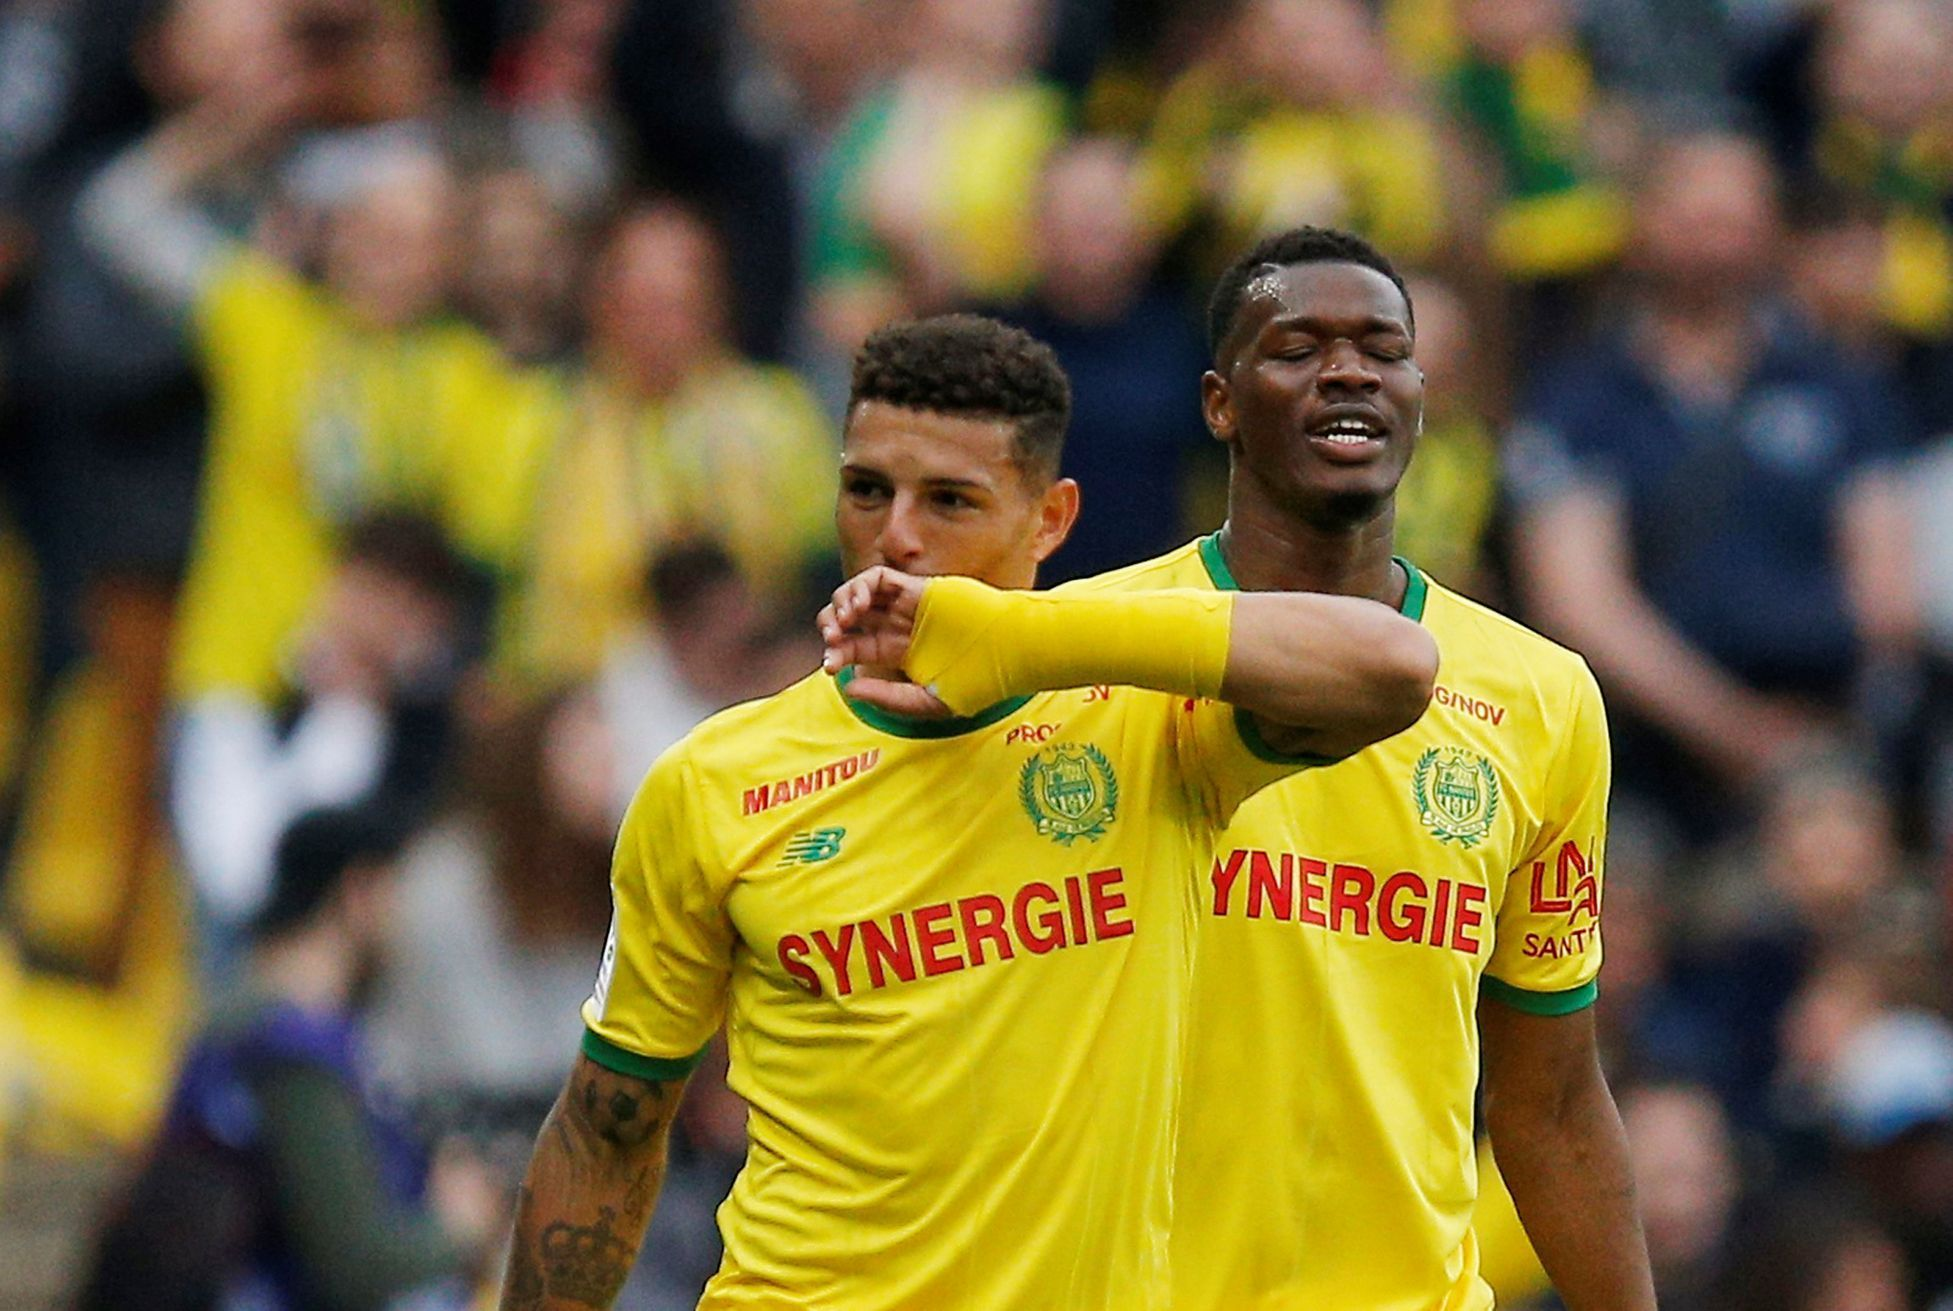 Nantes - PSG v Ligue 1 2019